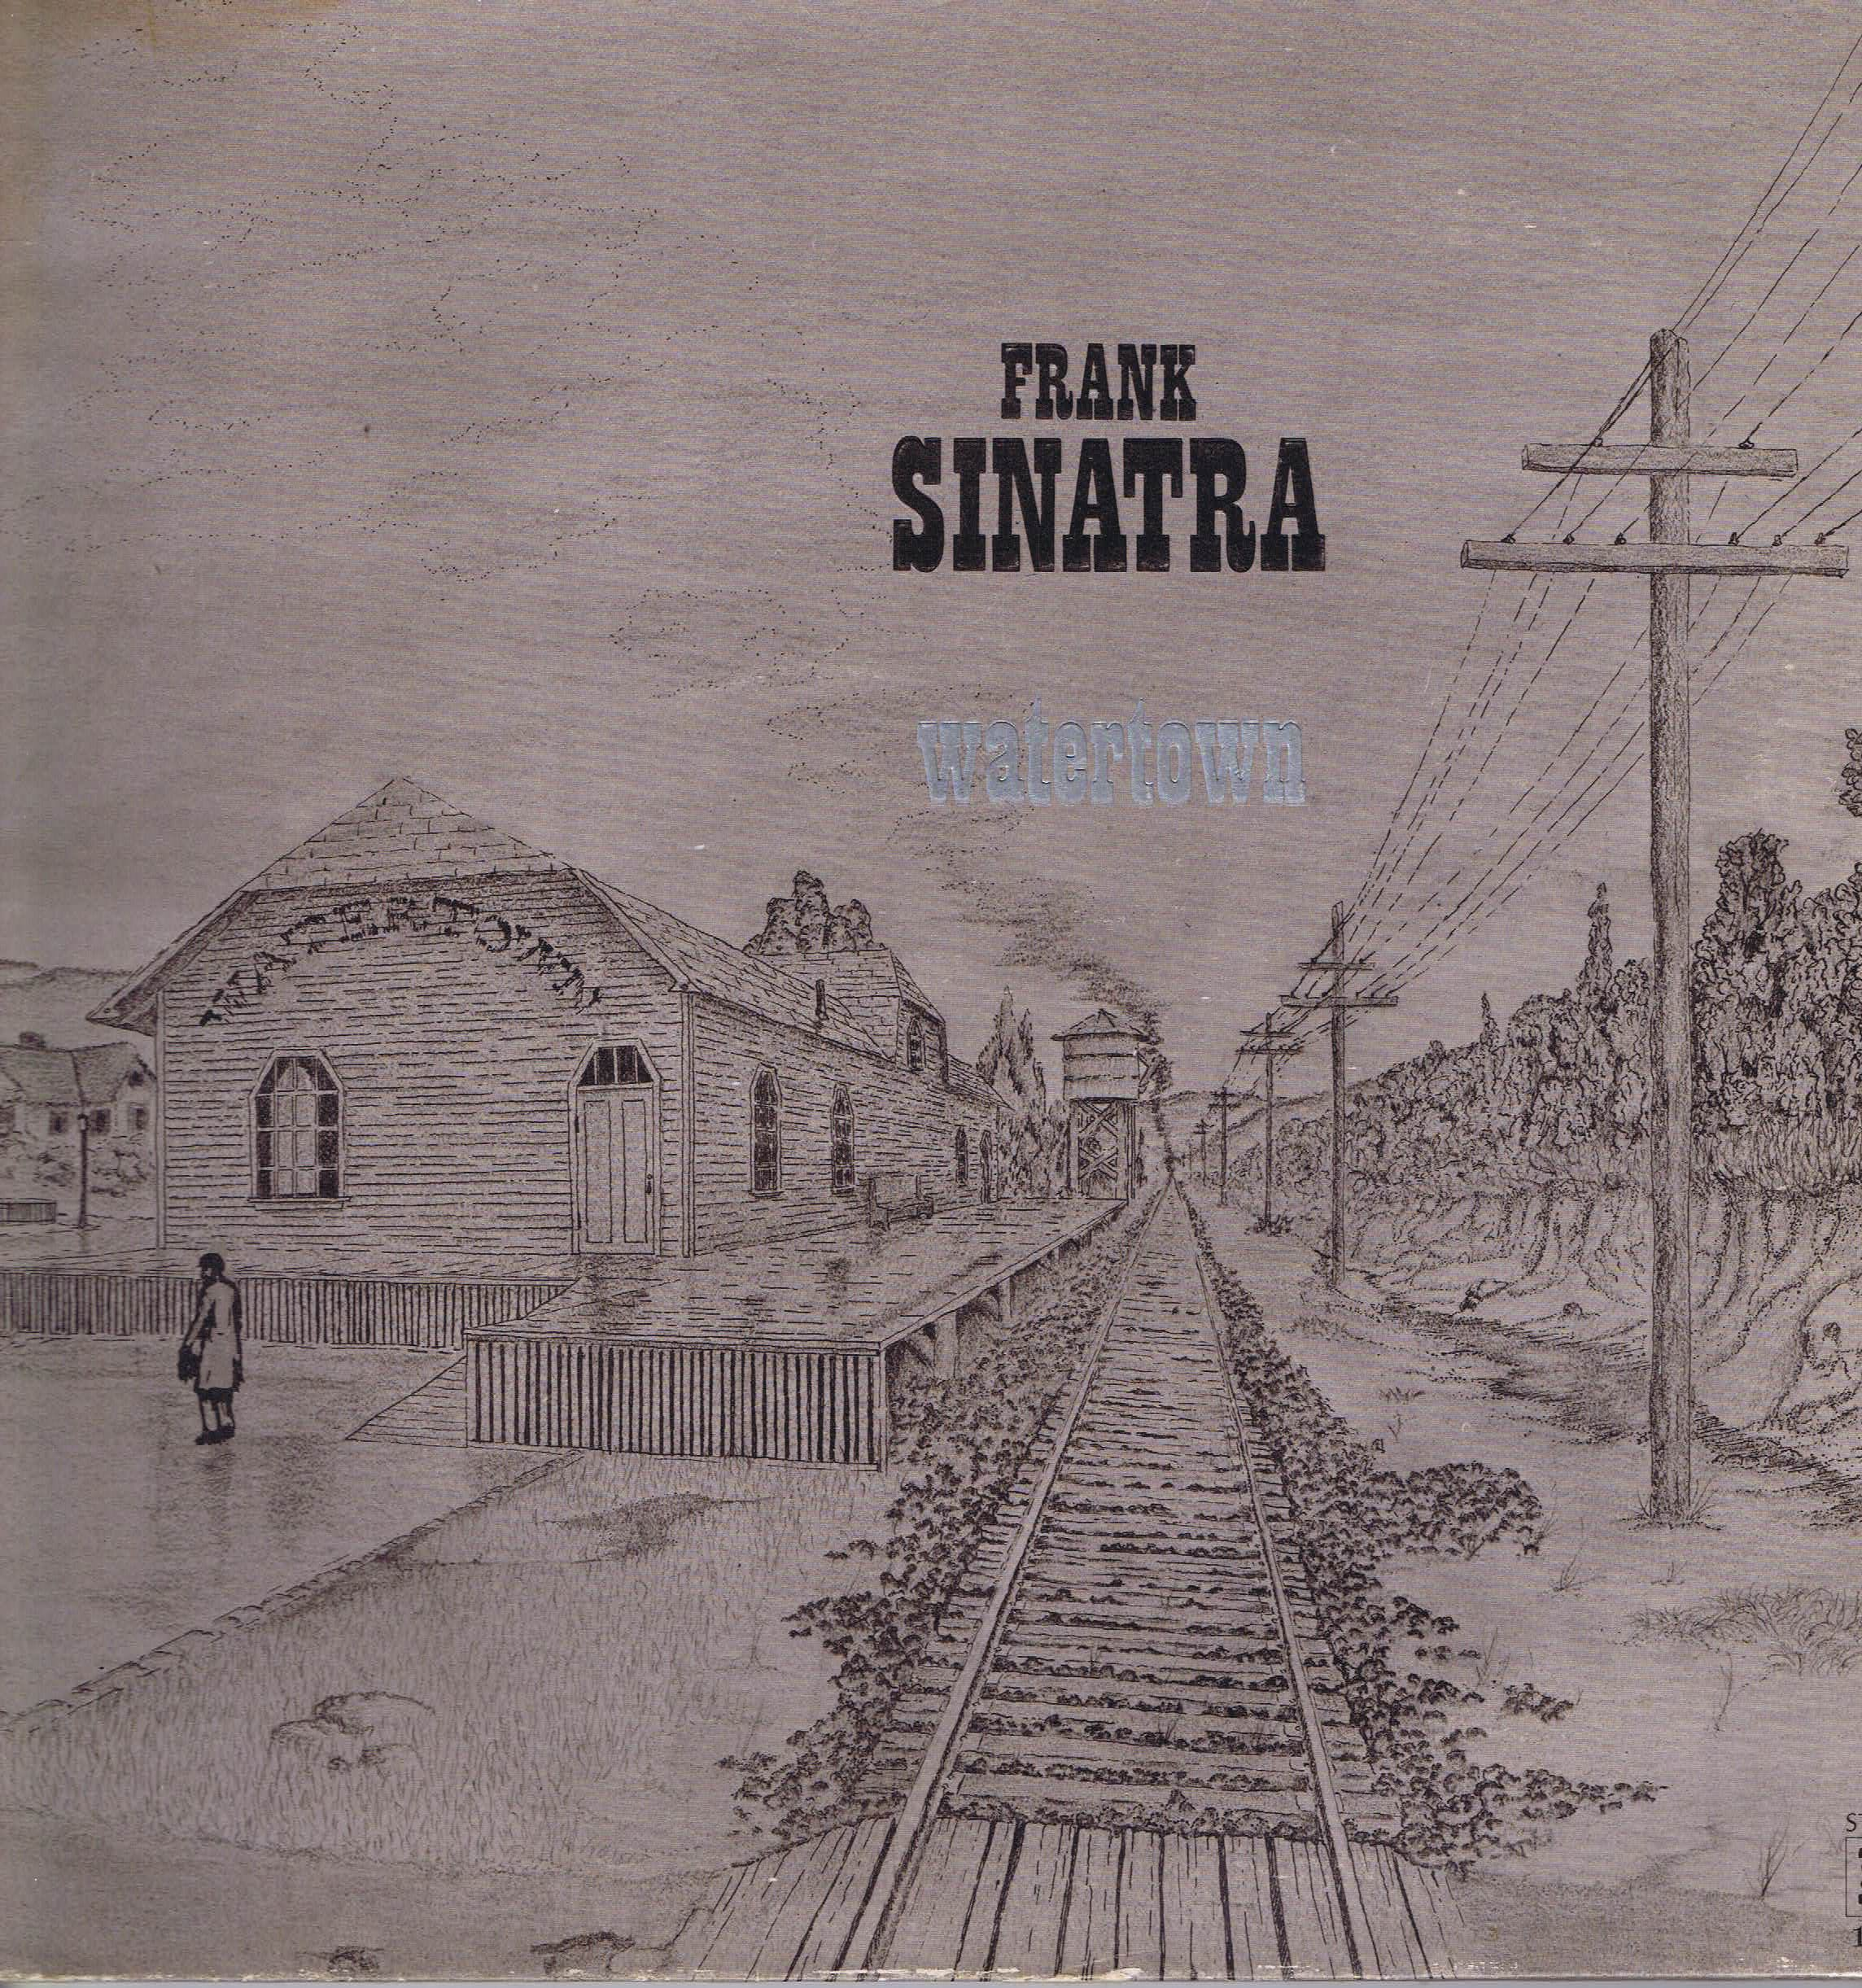 Frank Sinatra Watertown Rslp 1031 Lp Vinyl Record